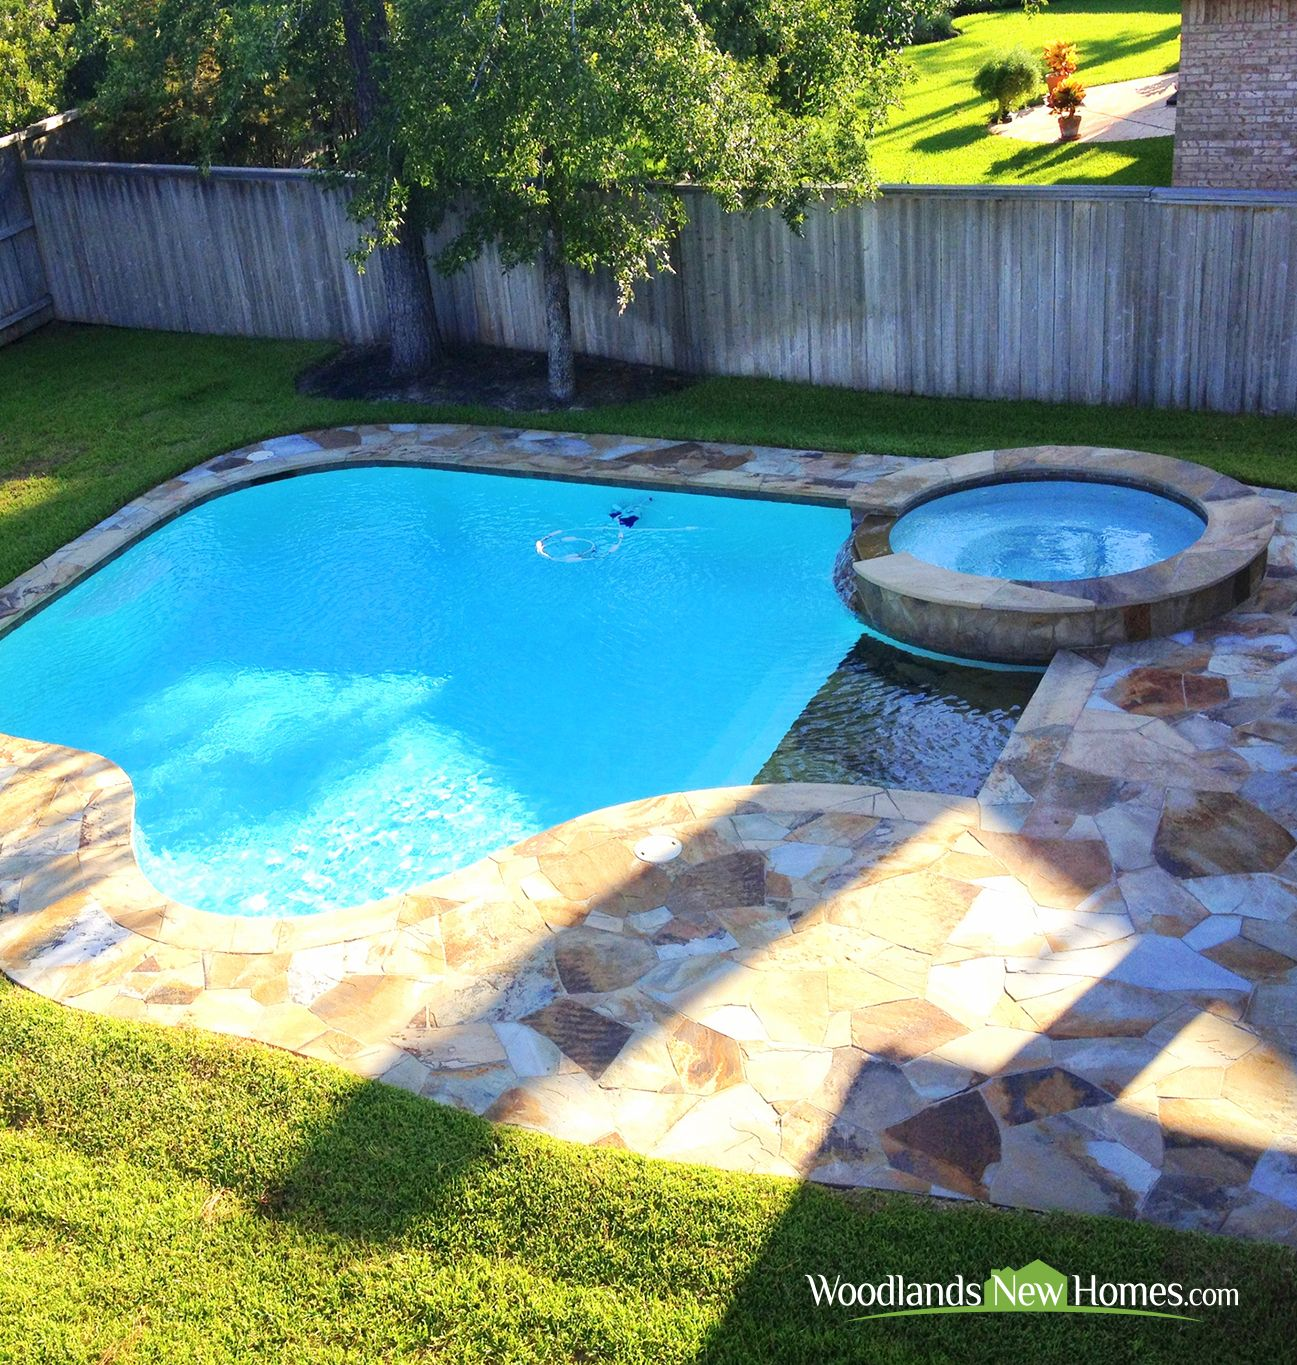 Gorgeous pool pool backyard summer 47 mohawk path - Swimming pools for small backyards ...